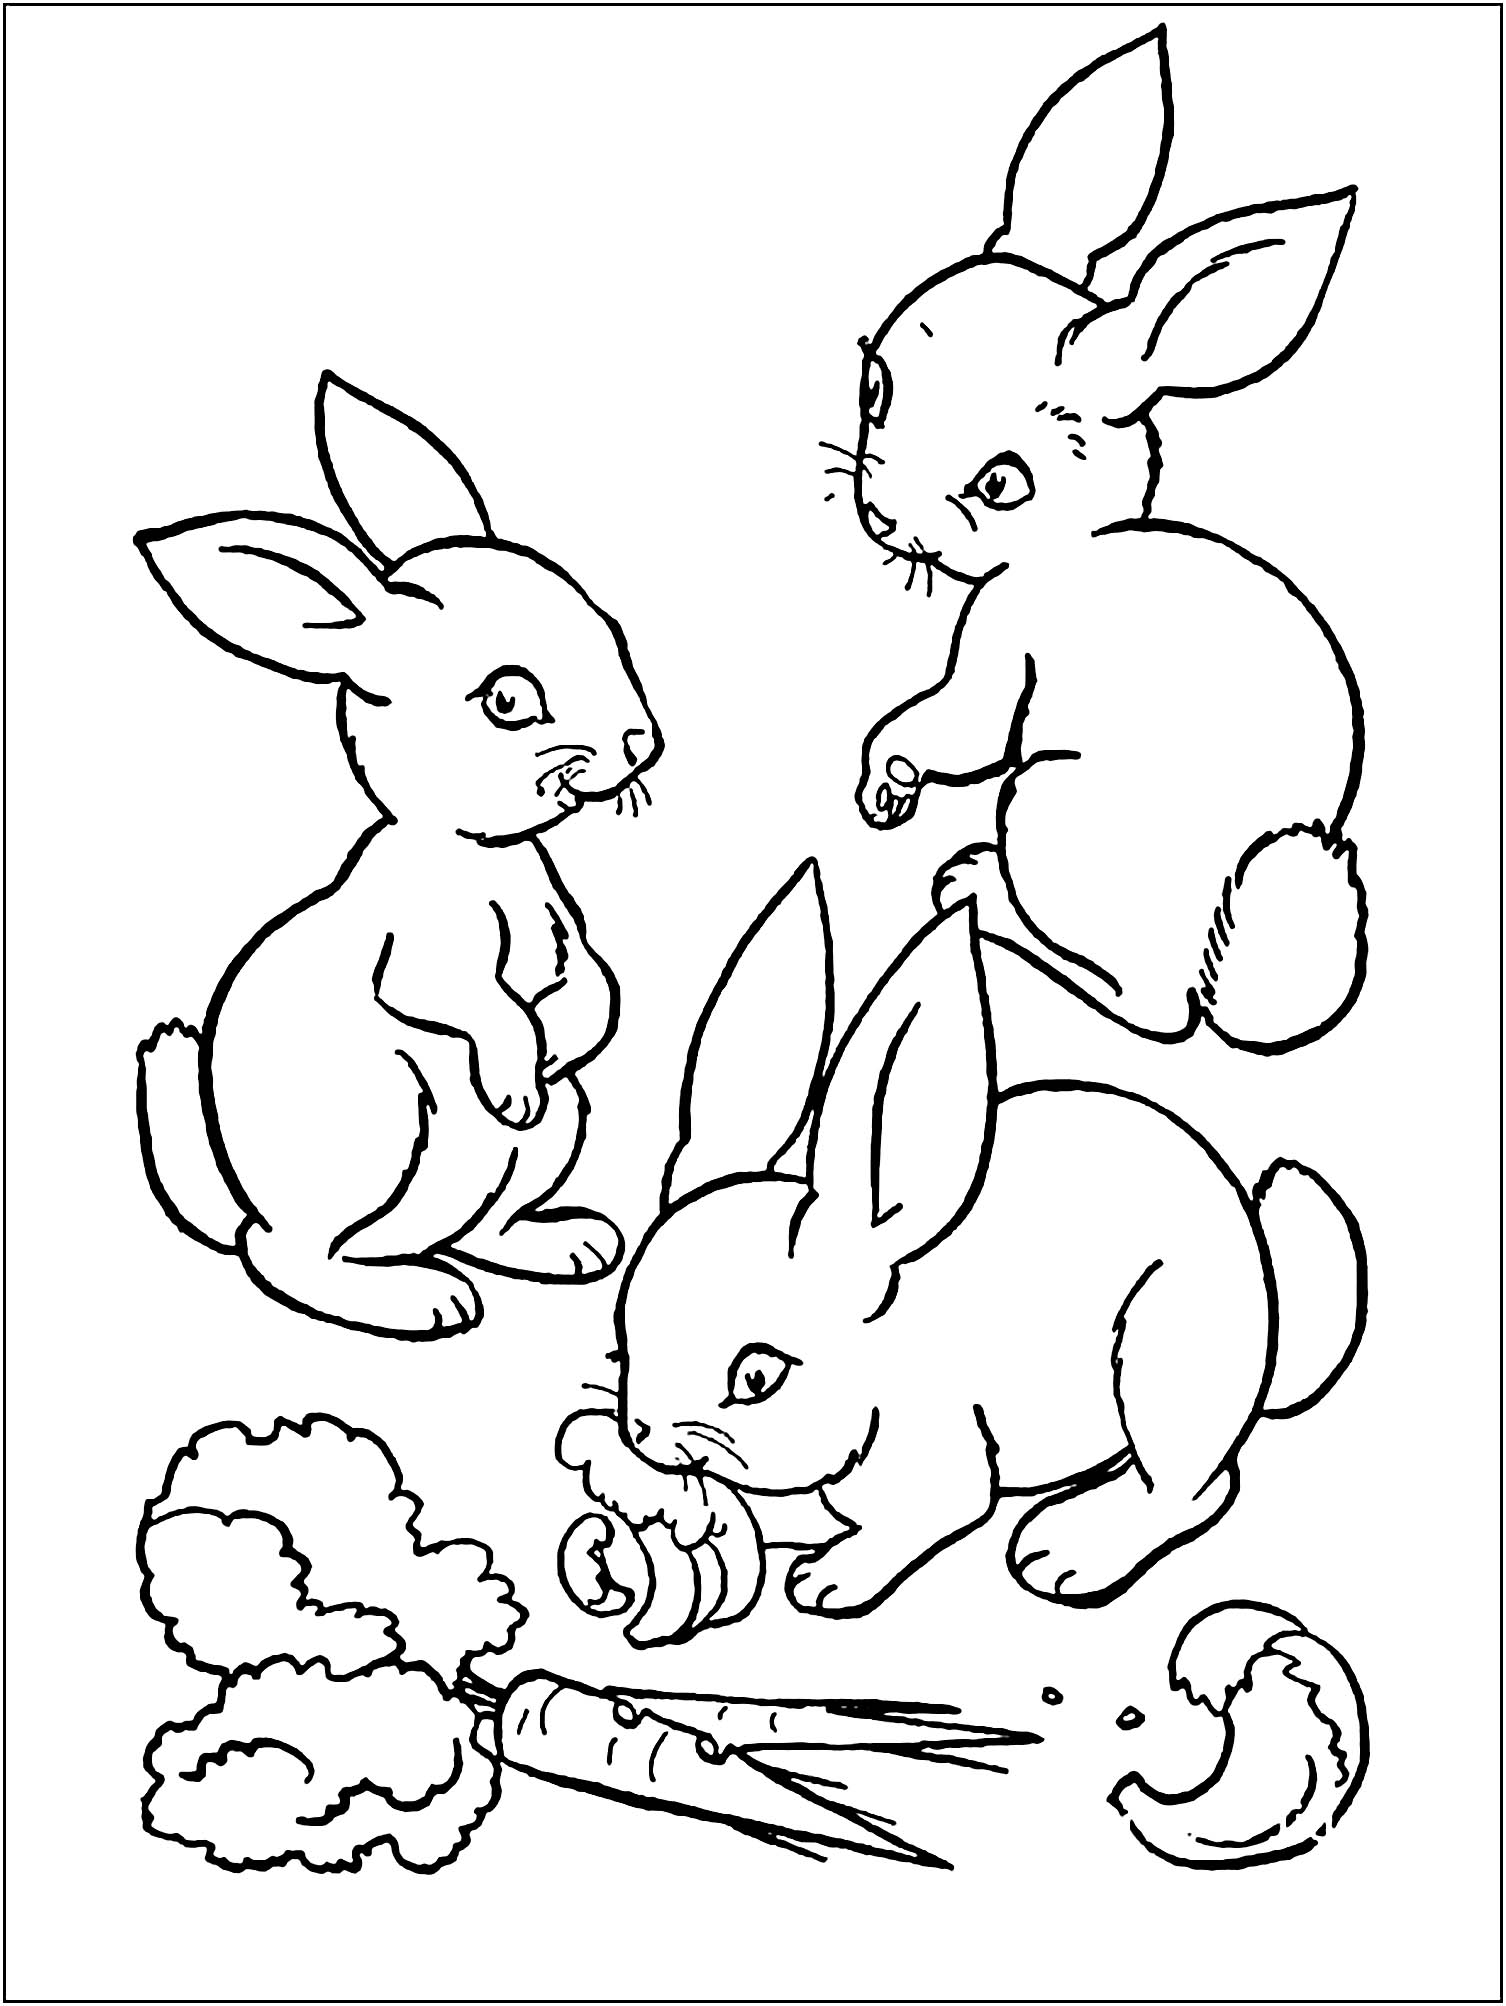 bunny coloring pictures rabbits coloring pages download and print rabbits pictures bunny coloring